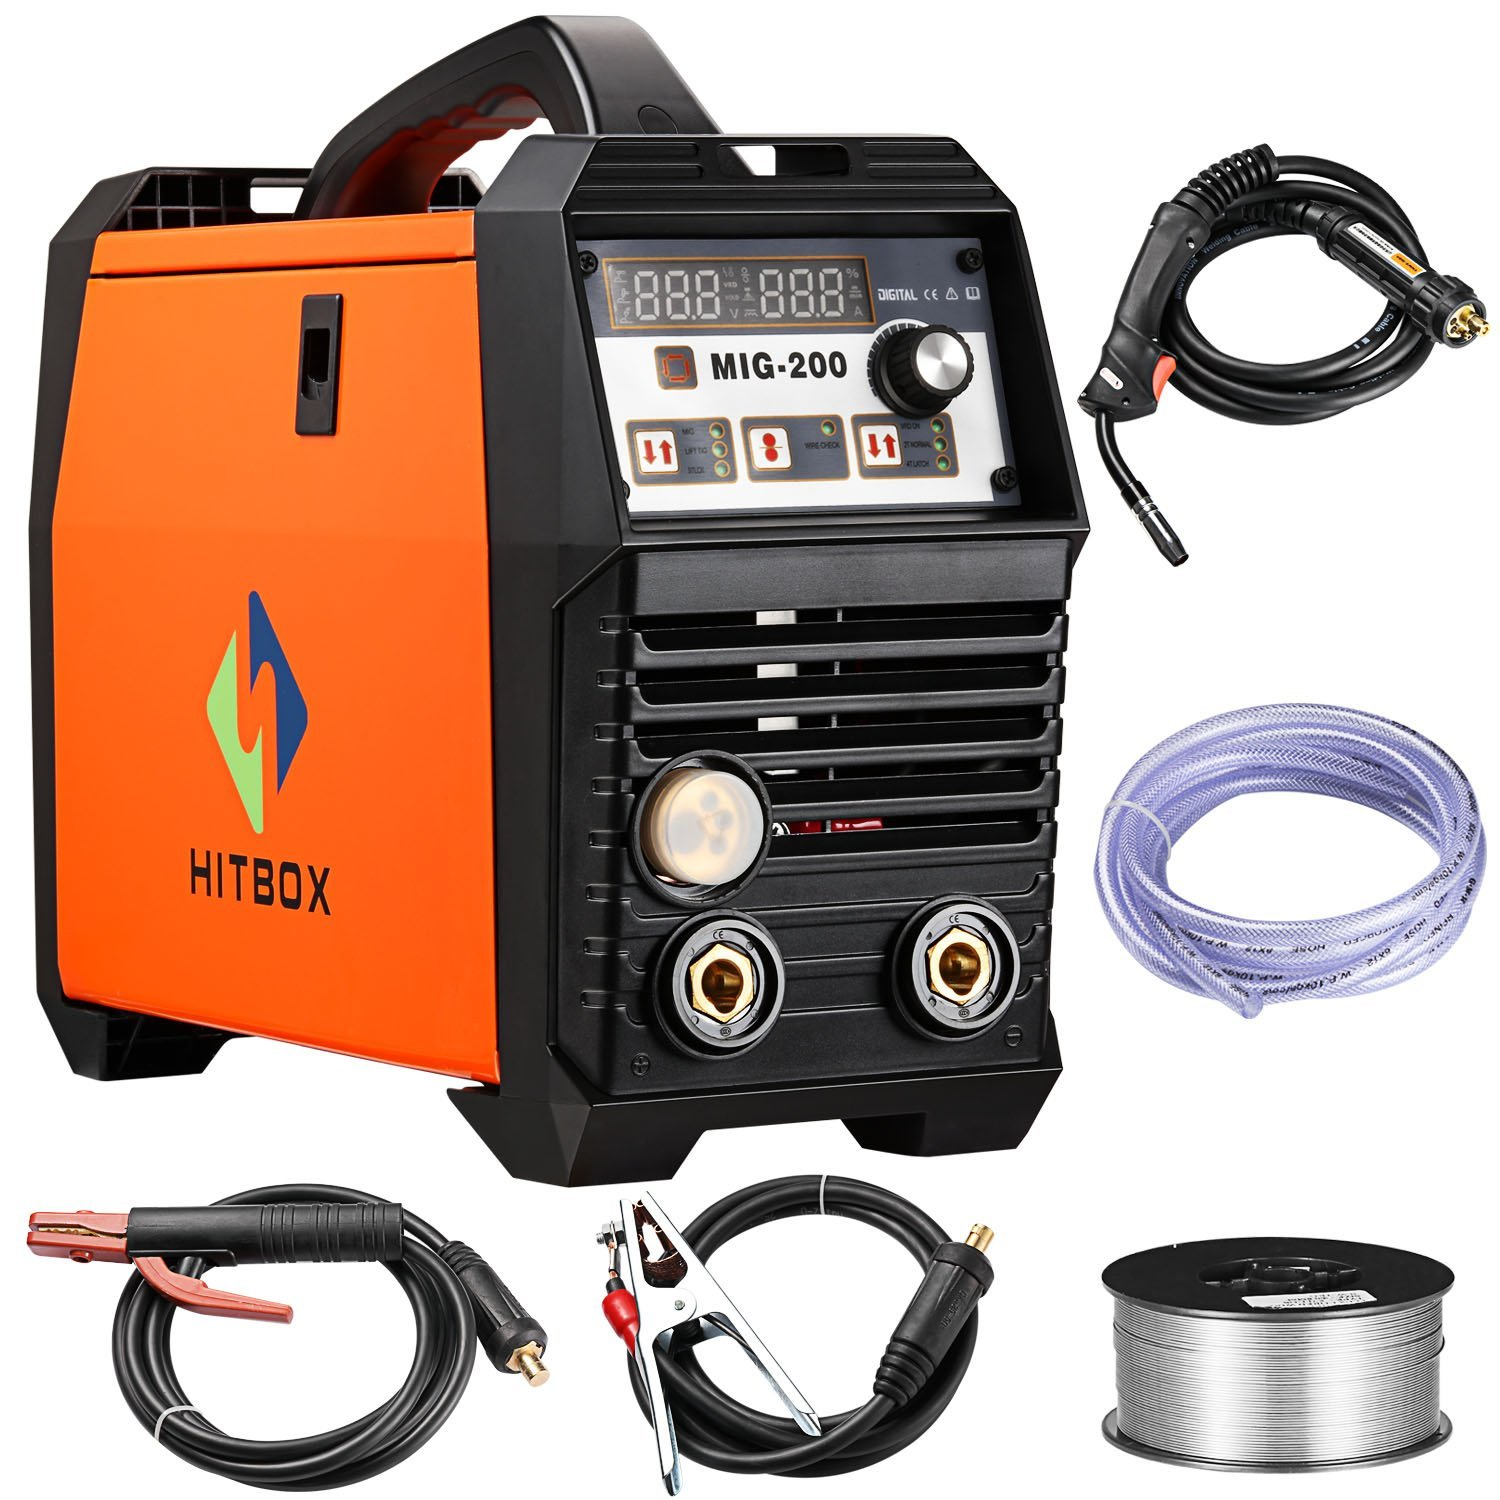 MIG Welder Inverter Mig welding 200Amp 220V DC MIG MAG ARC LIFT TIG ARC Welding Machine Gas Gasless Flux Cored Wire Solid Core Wire Welder